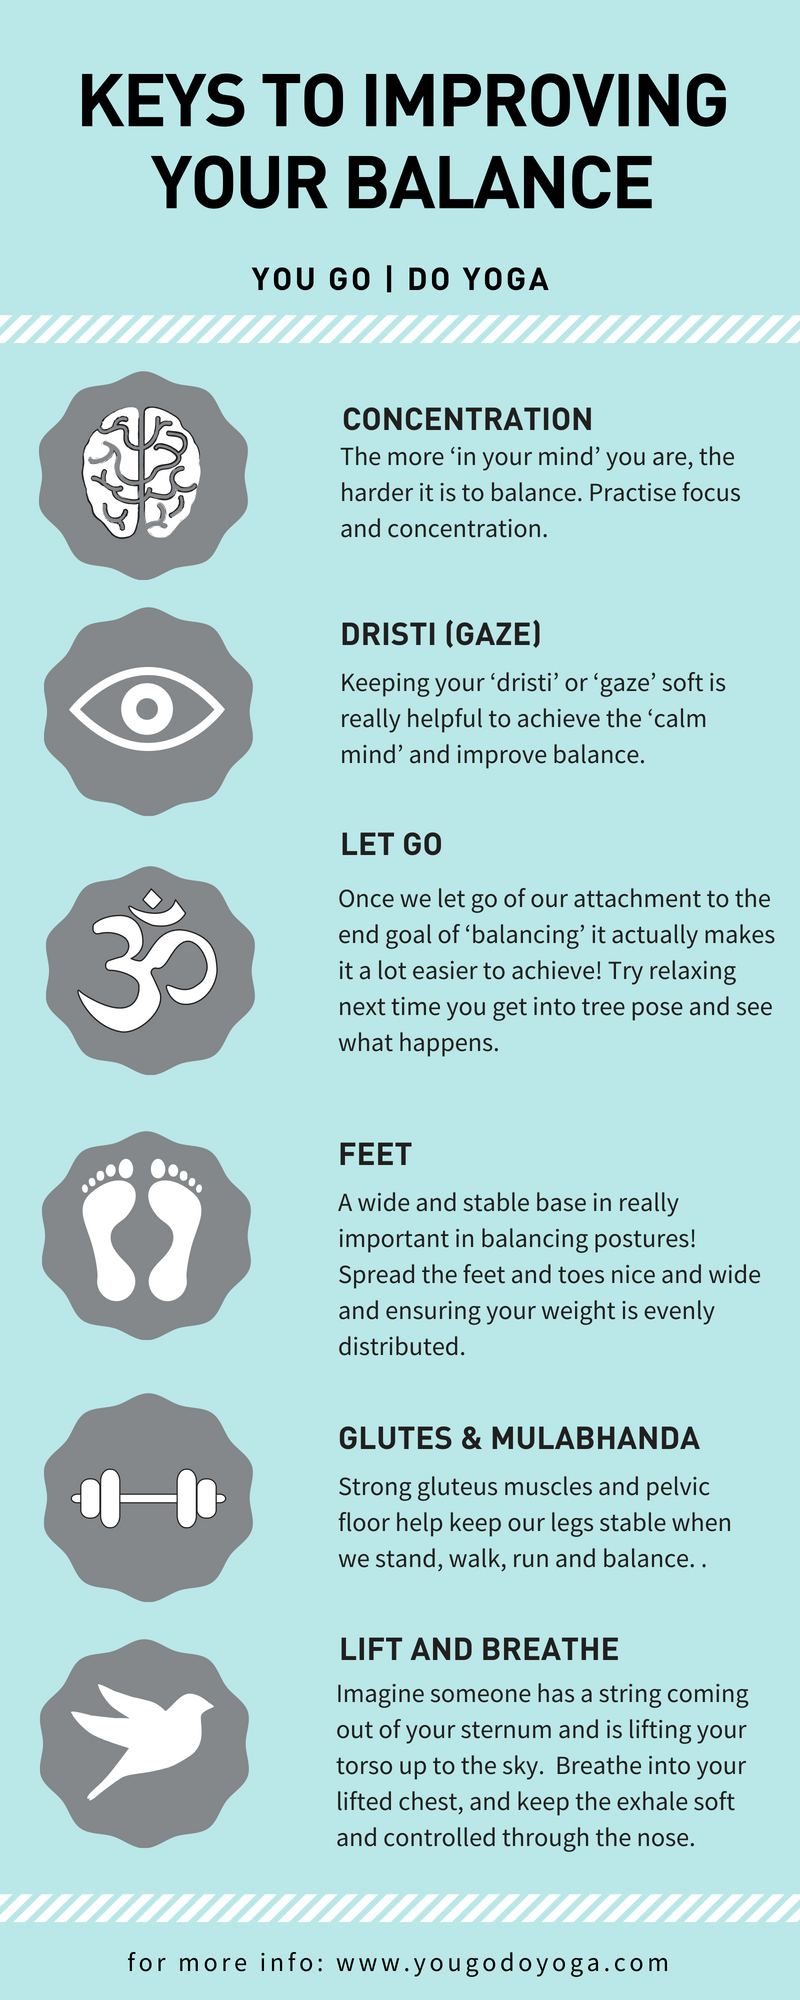 Top Tips For Improving Balance